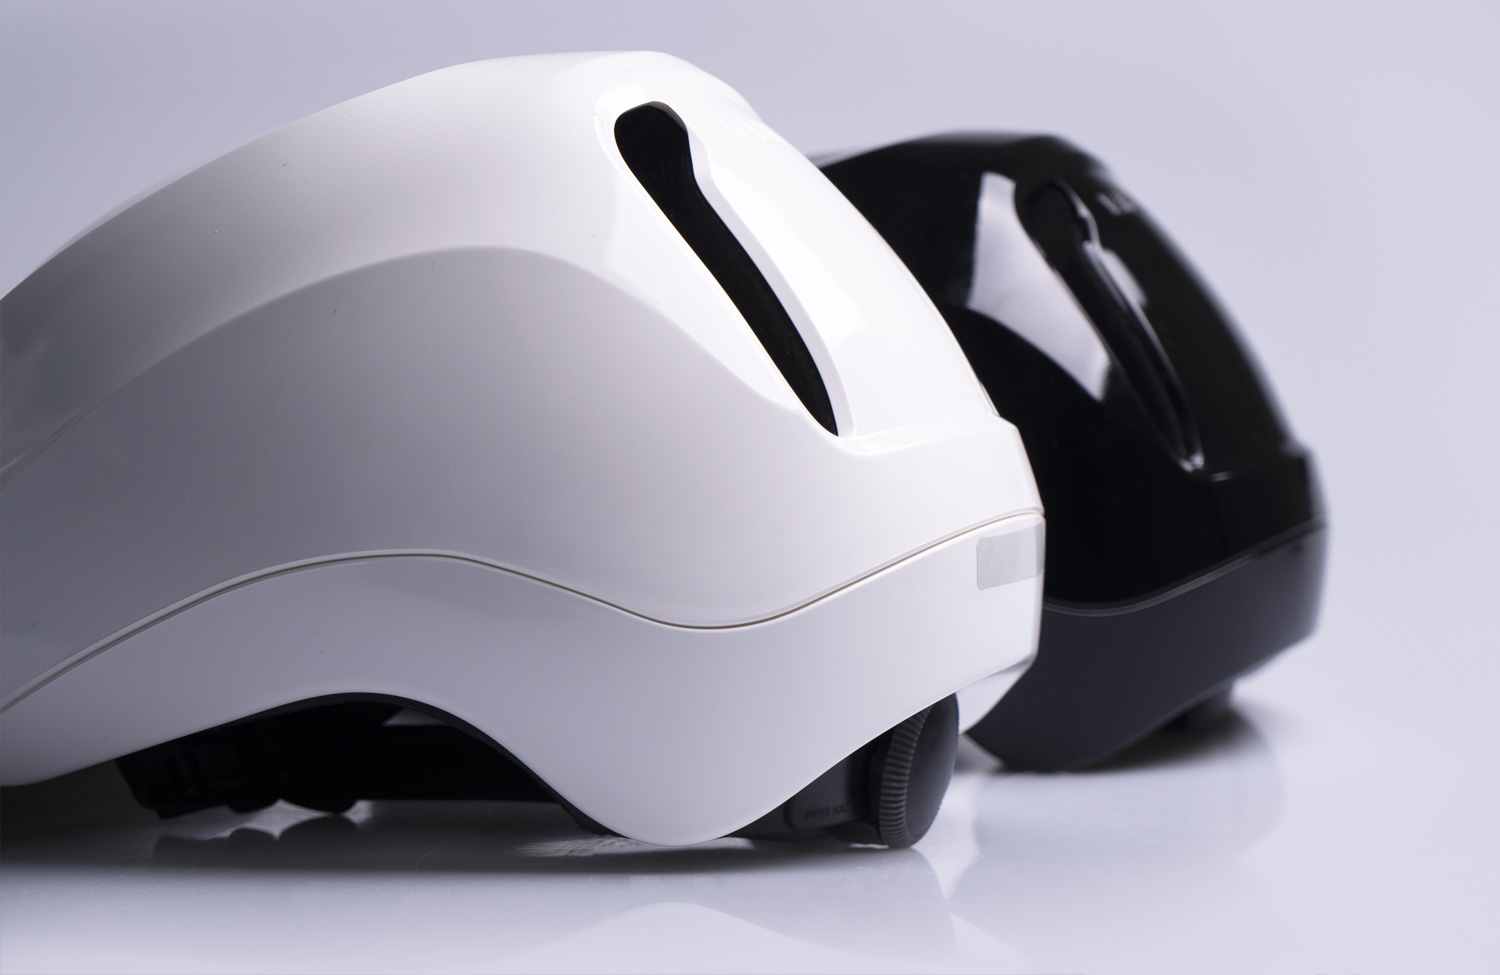 Urban R, Moebius and Moebius Elite: New bike helmets for urban use from KASK